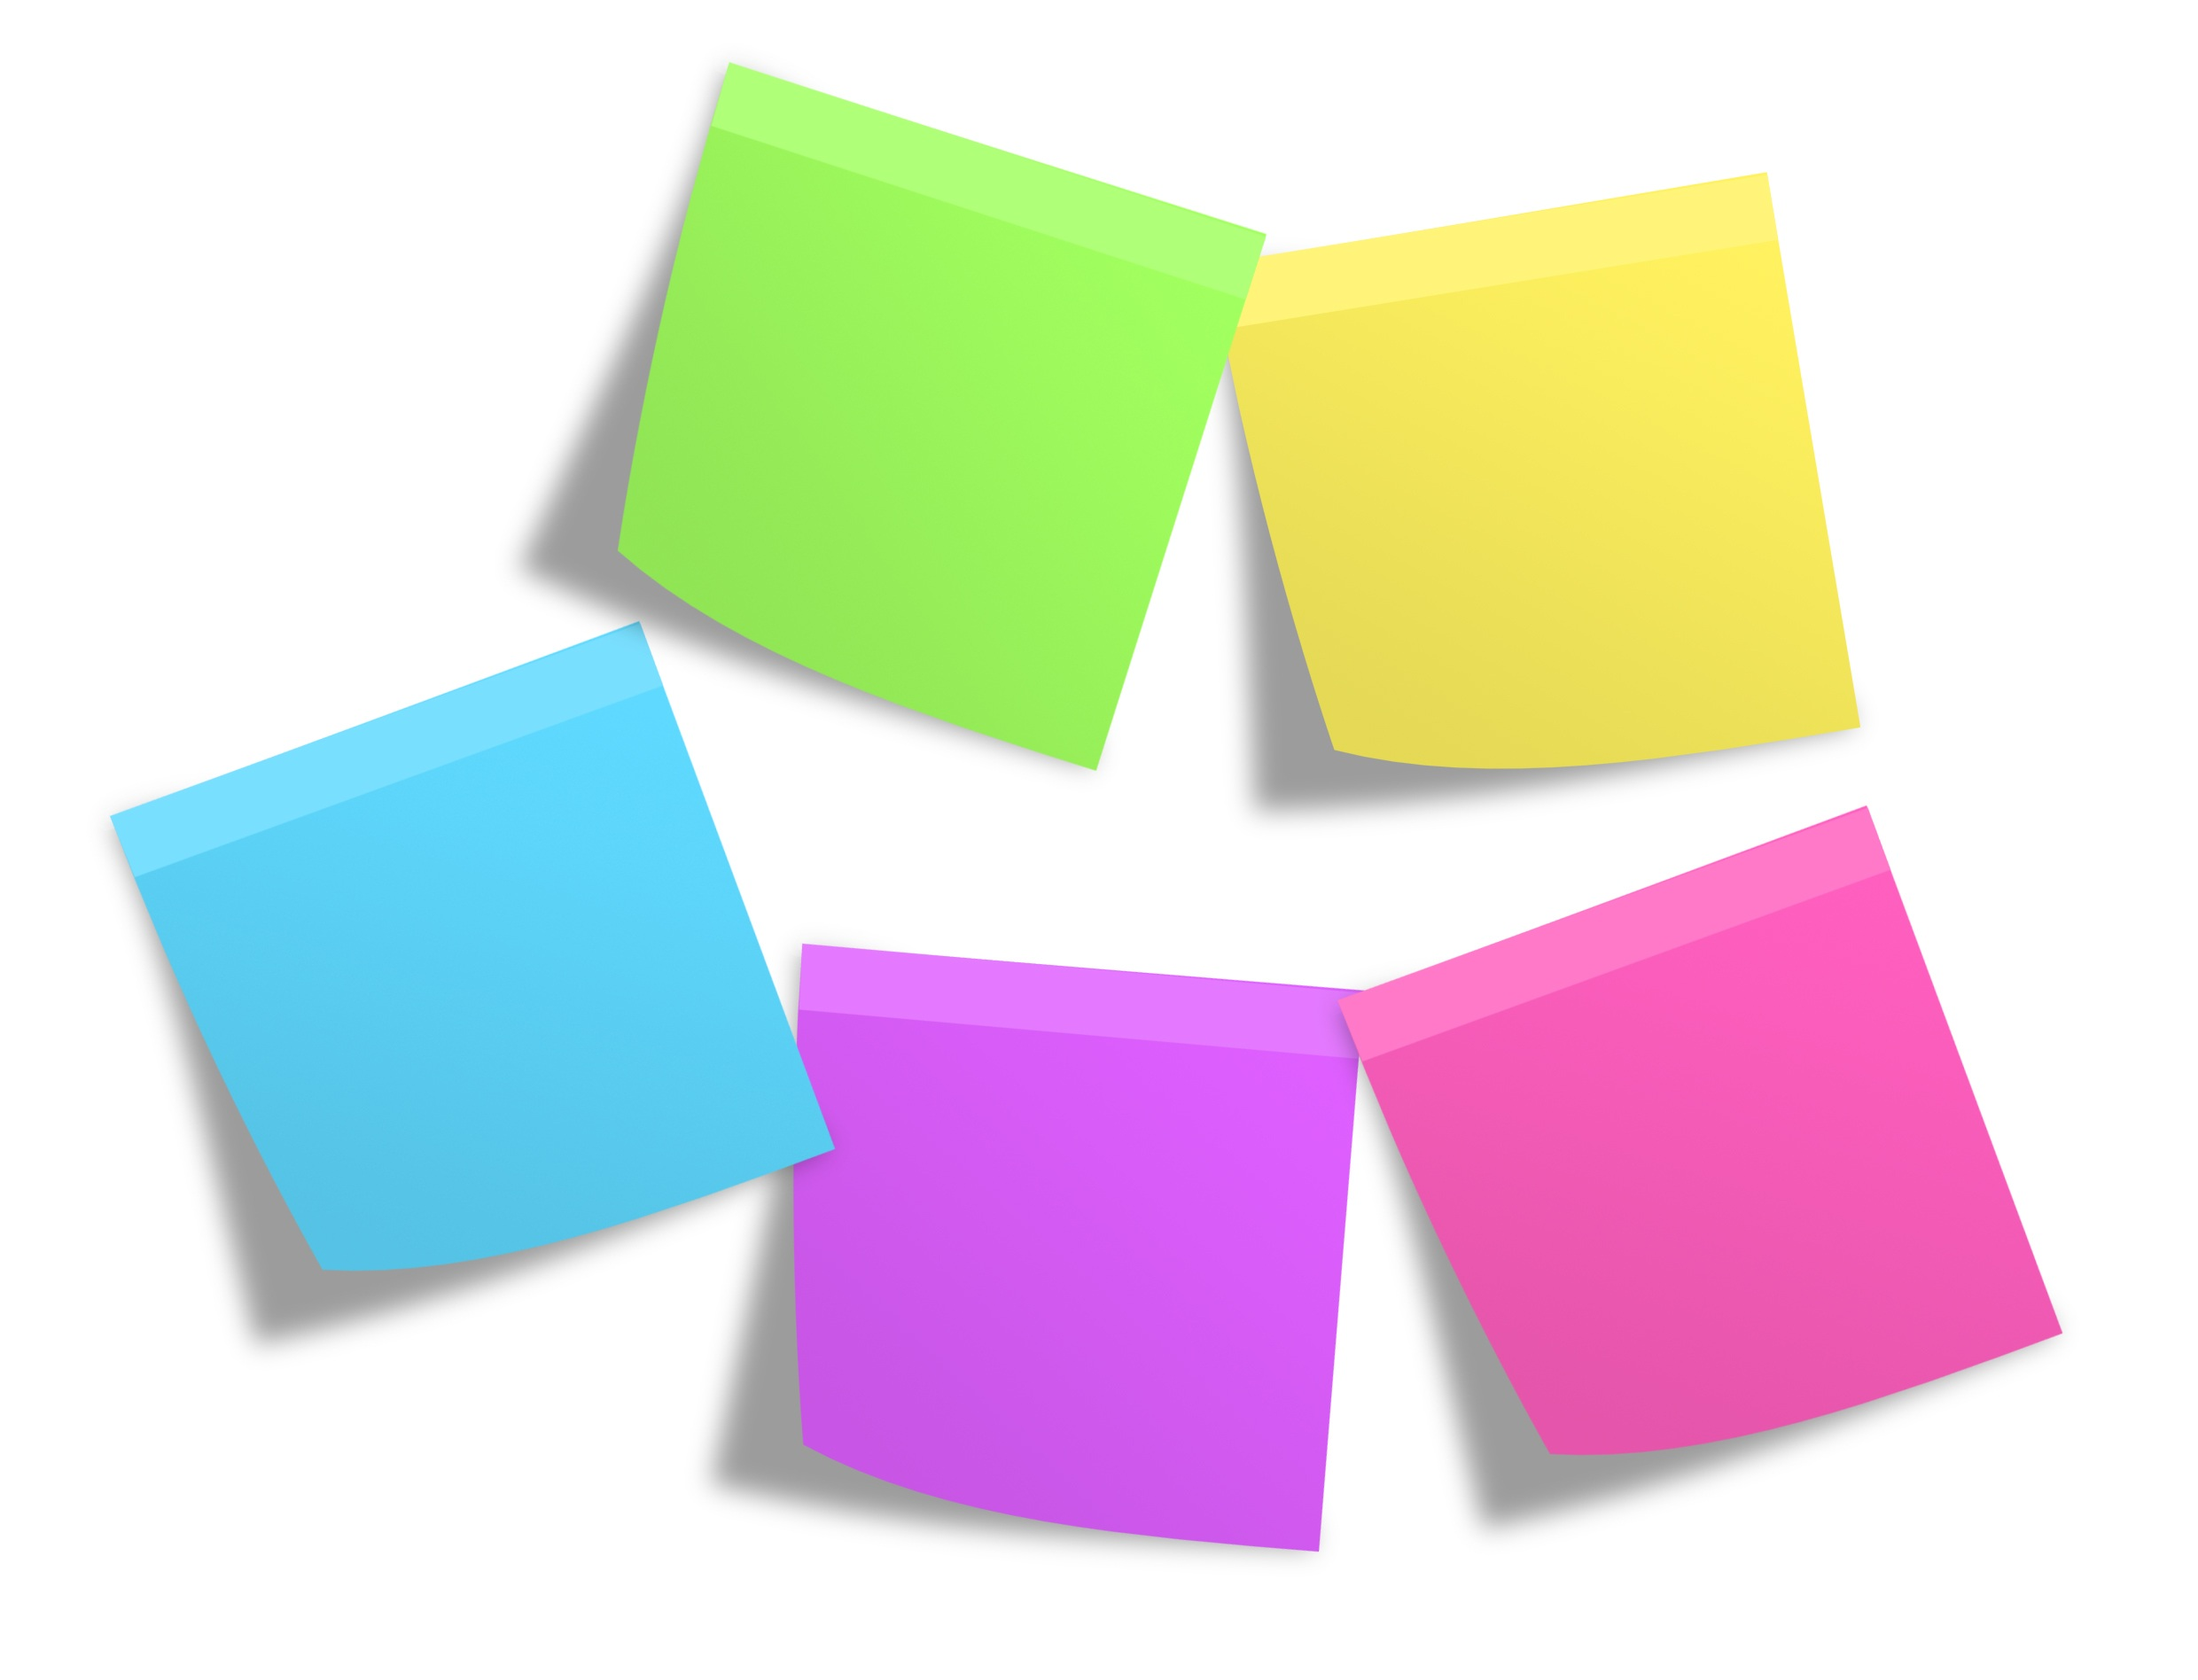 Pink Green Yellow Blue and Purple Sticky Note Mounted on White Painted Wall